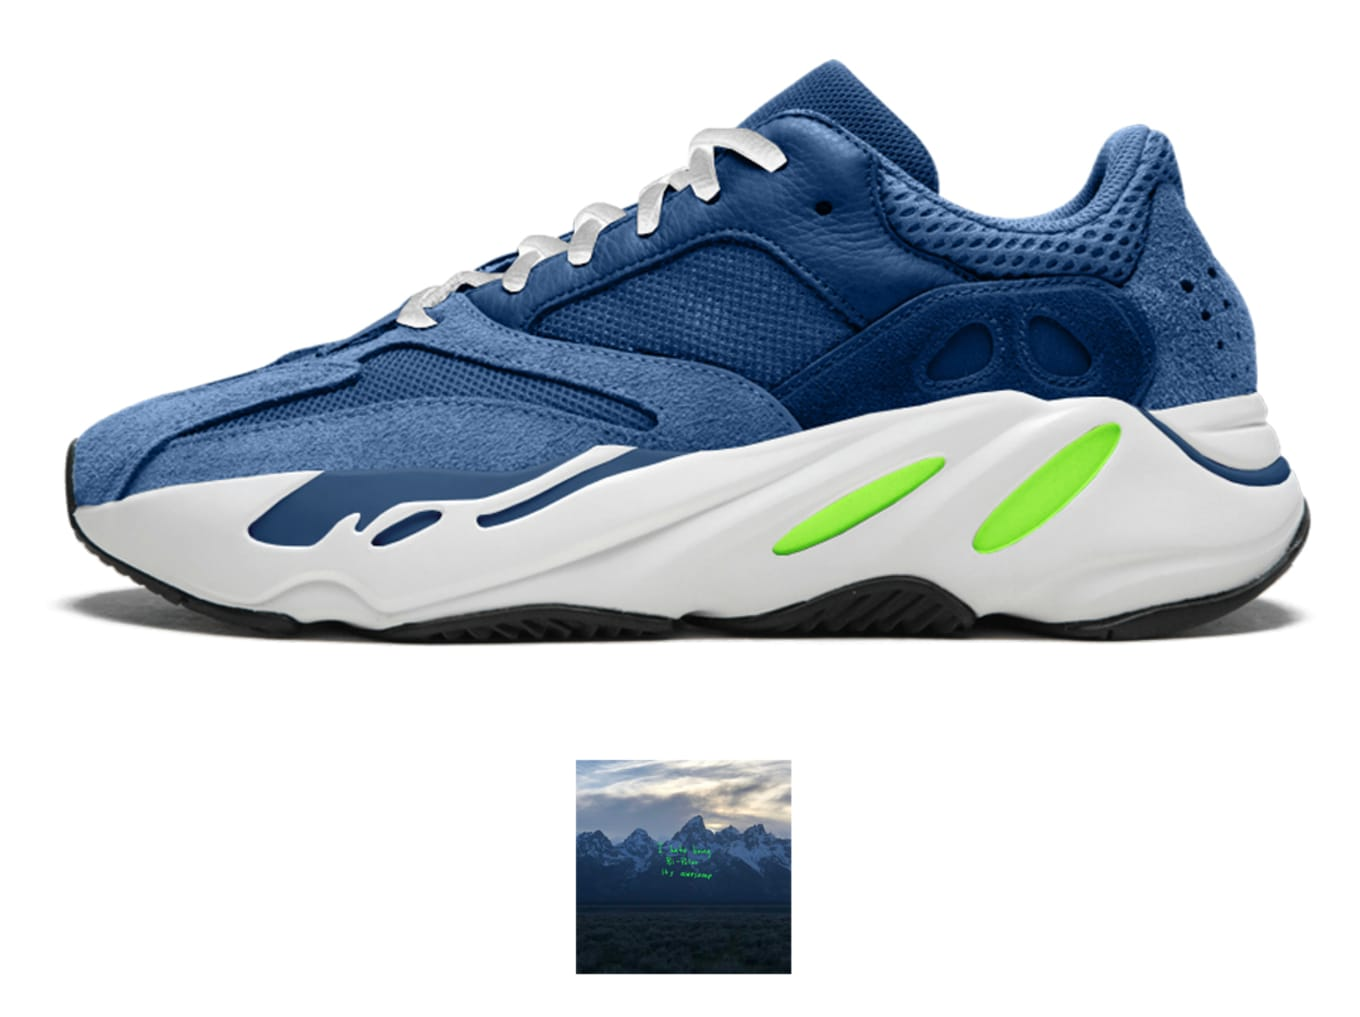 buy popular 043f8 f8270 Kanye West Yeezy 700 Albums | Sole Collector